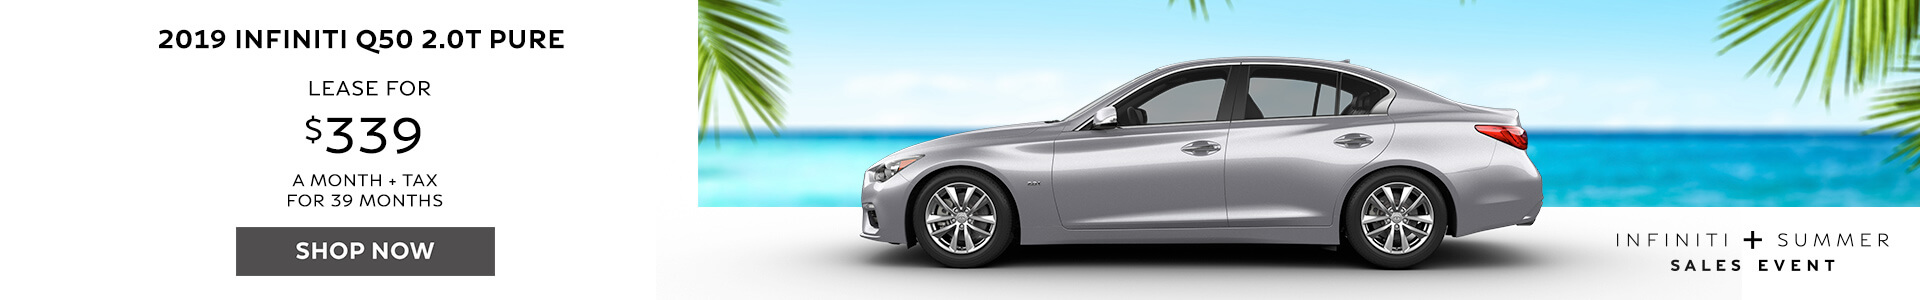 Q50 PURE - Lease for $339